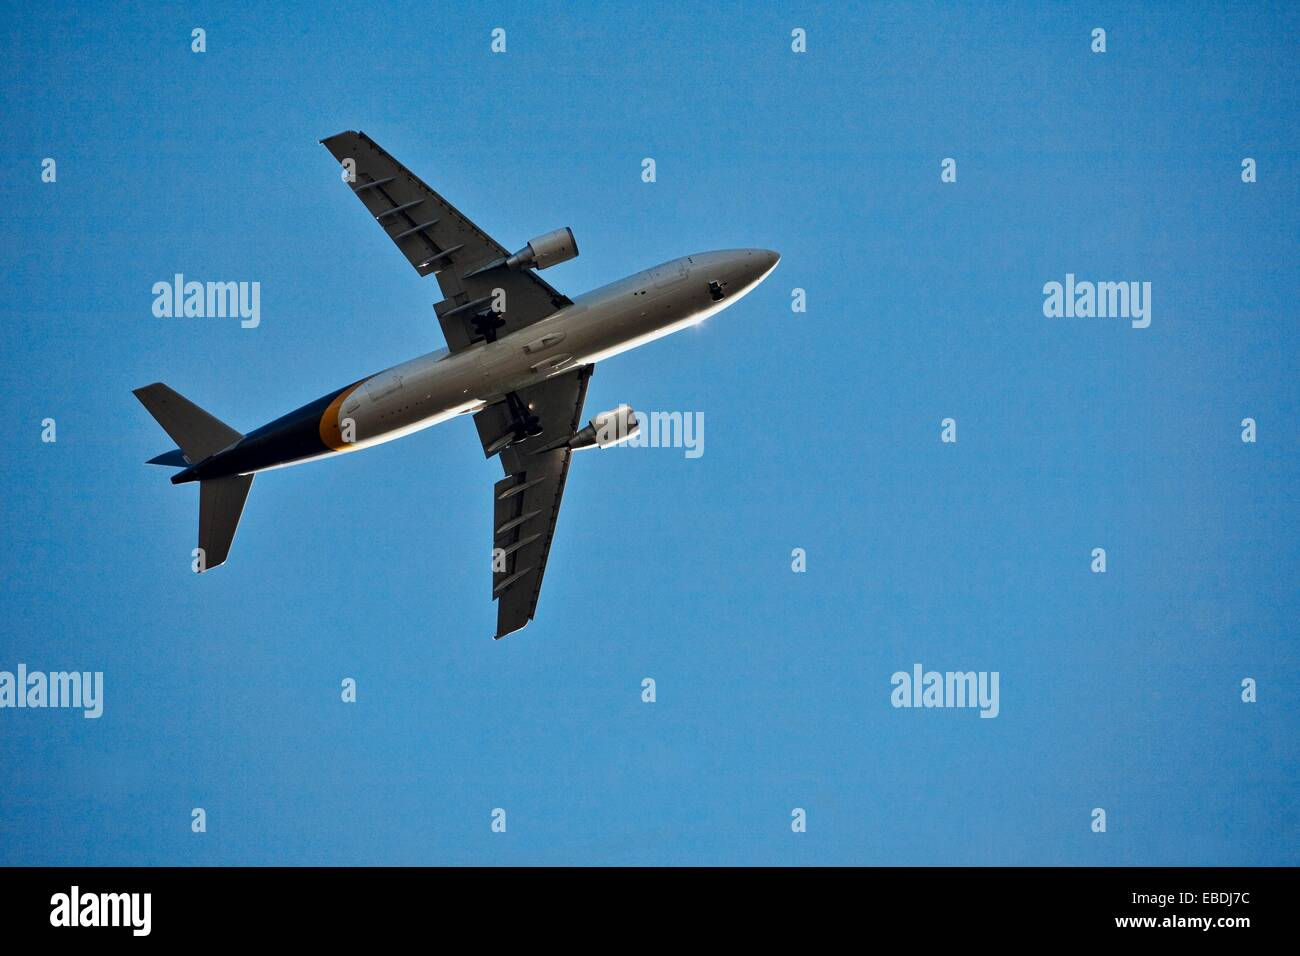 Image of commercial airliner shot from below with a blue sky in the background - Stock Image